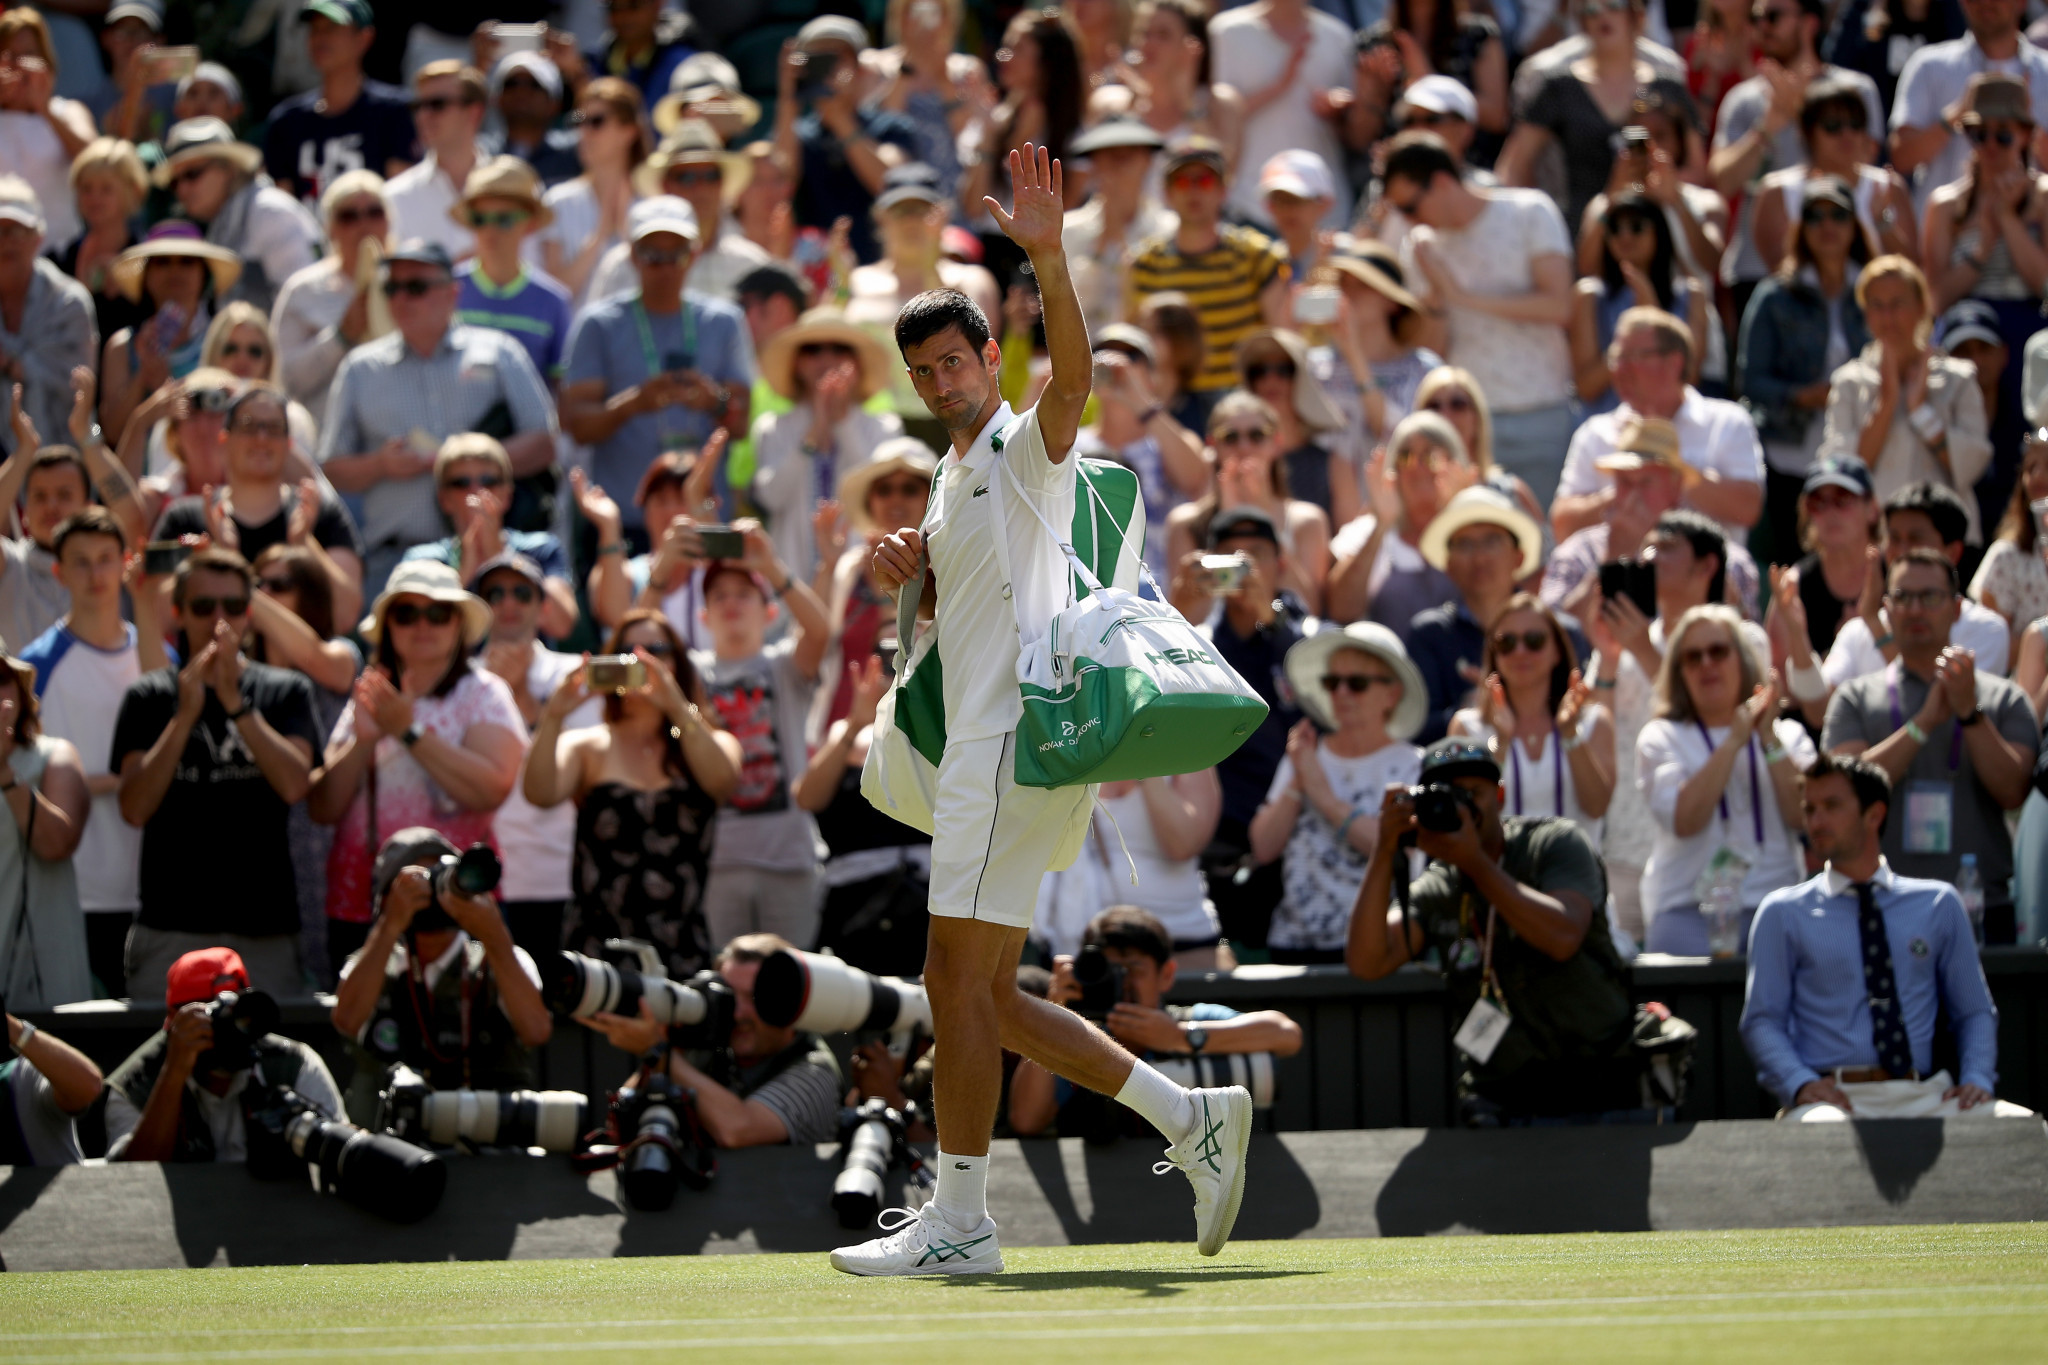 Wimbledon finals to be at full capacity as part of COVID-19 event pilot